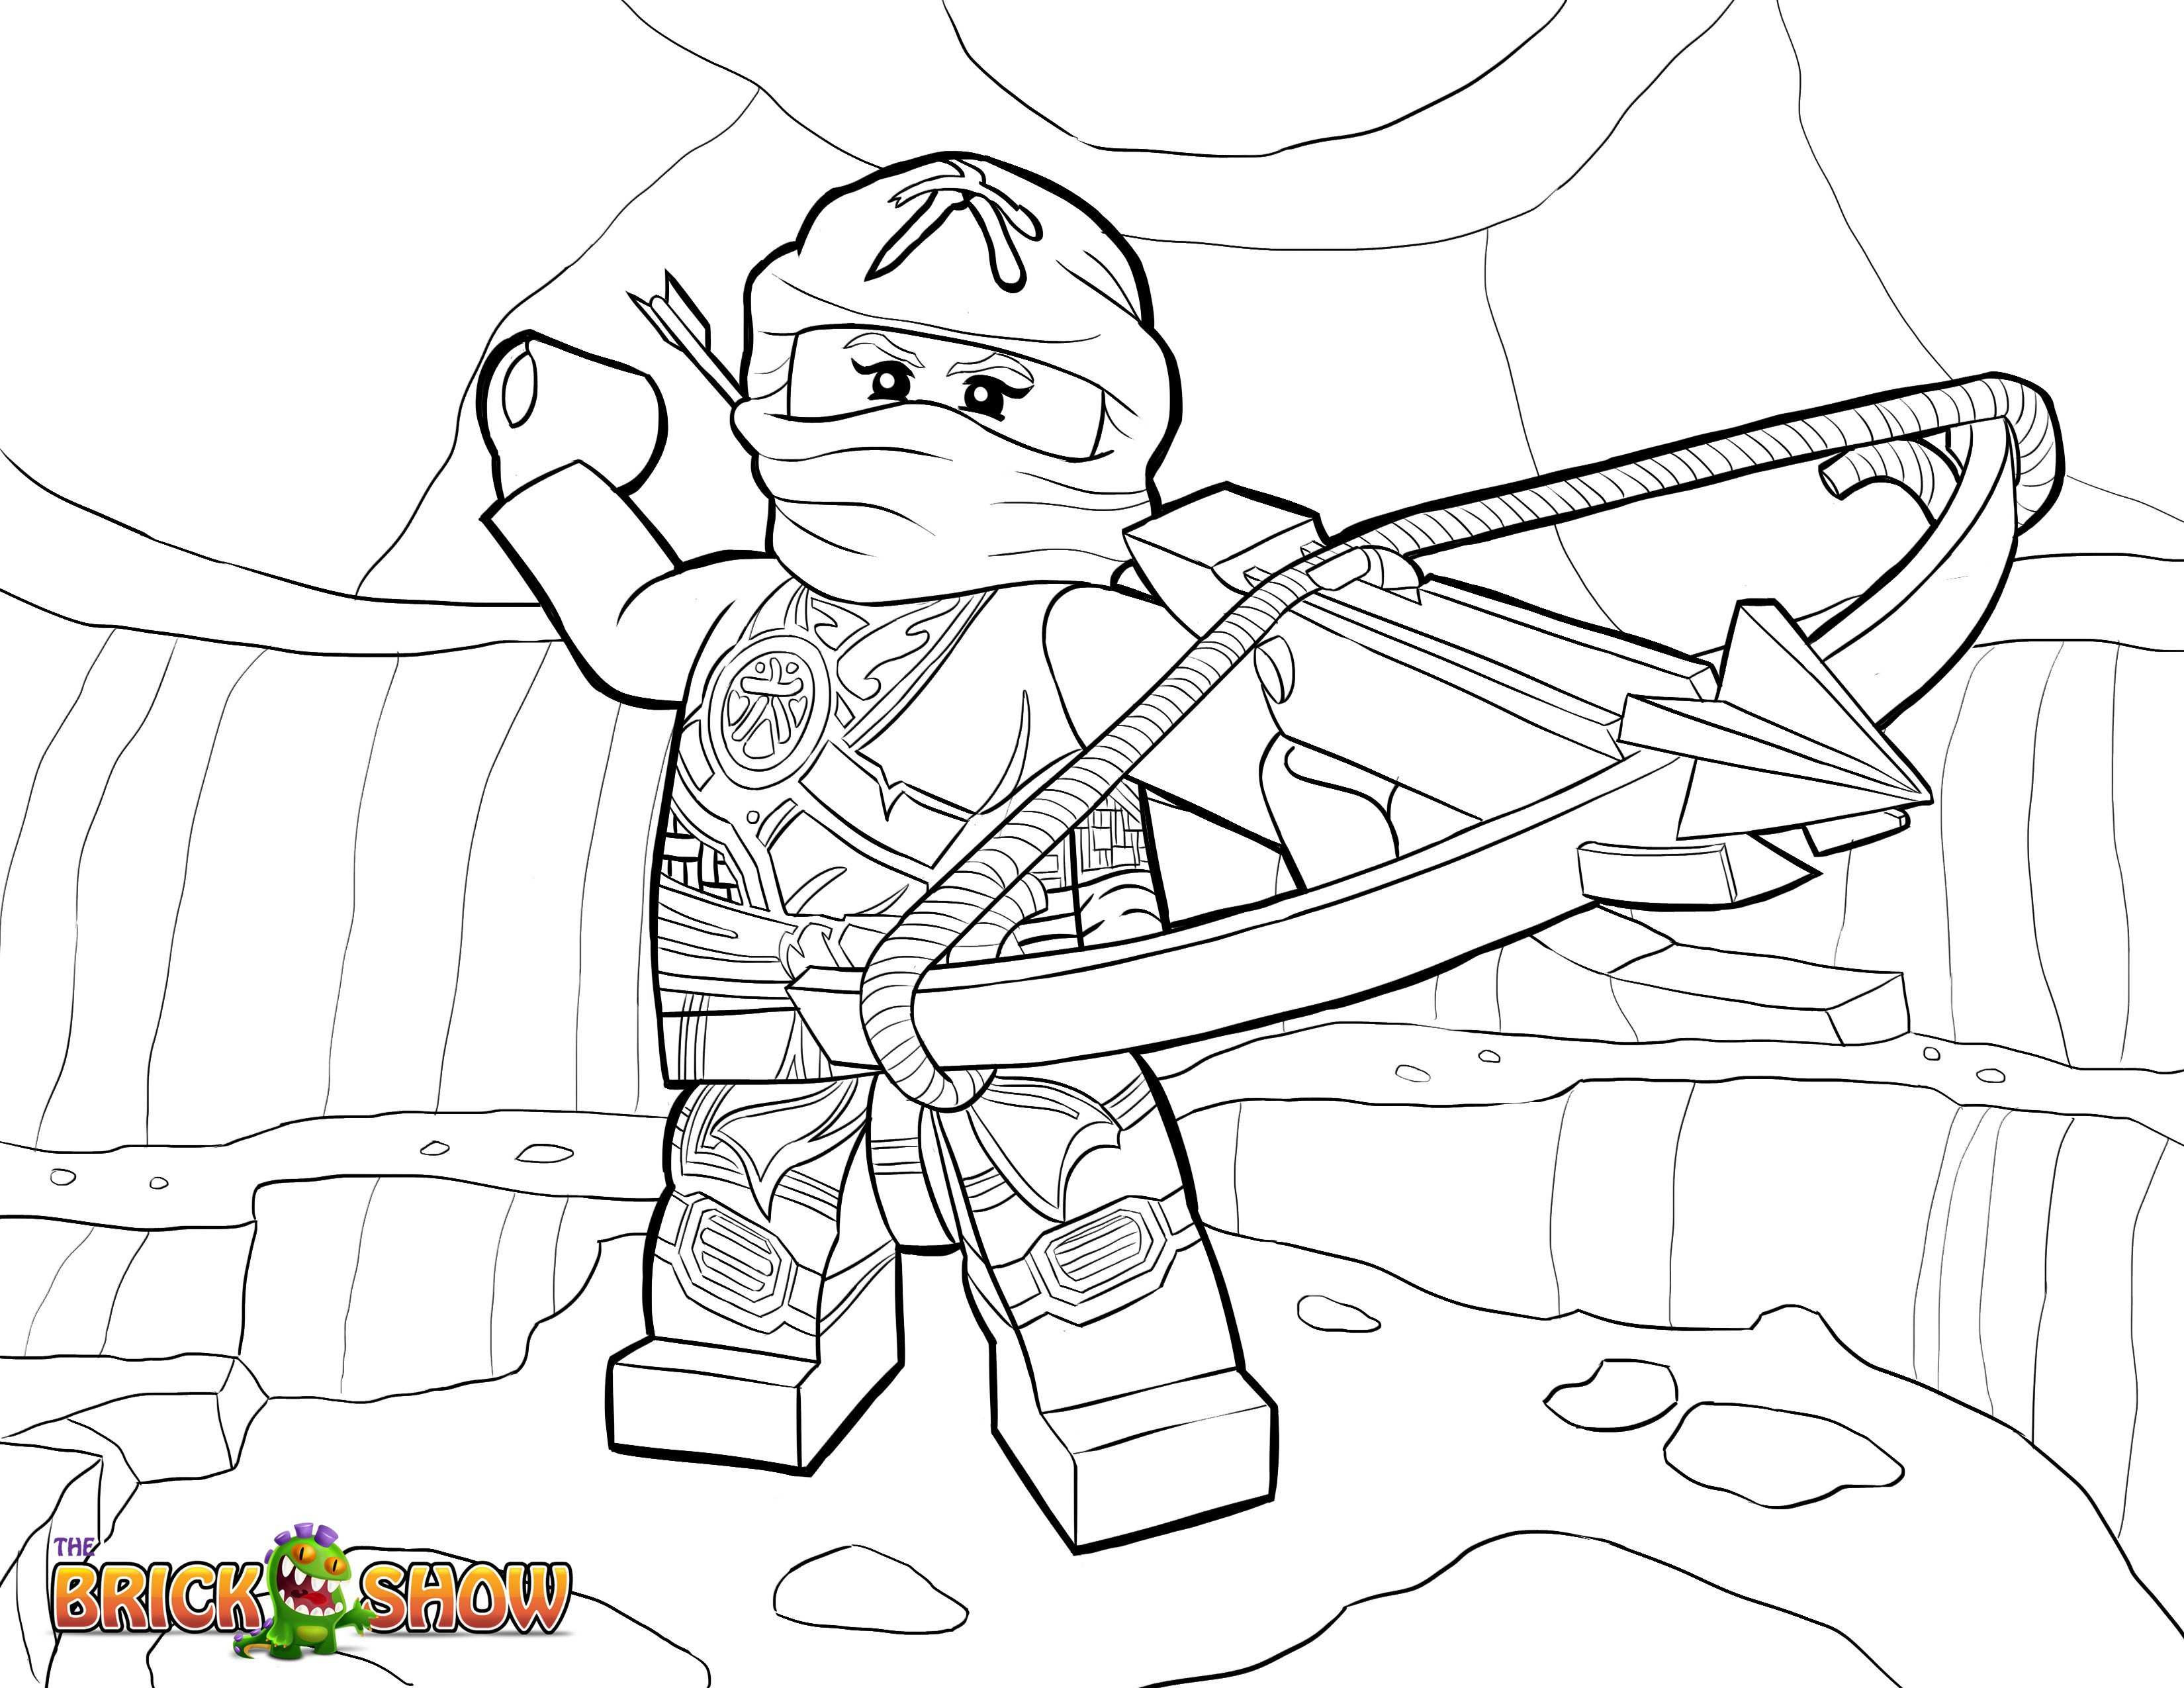 Disney Princess Ausmalbilder Inspirierend Pinocchio Coloring Pages Unique New Printable Coloring Book Disney Galerie